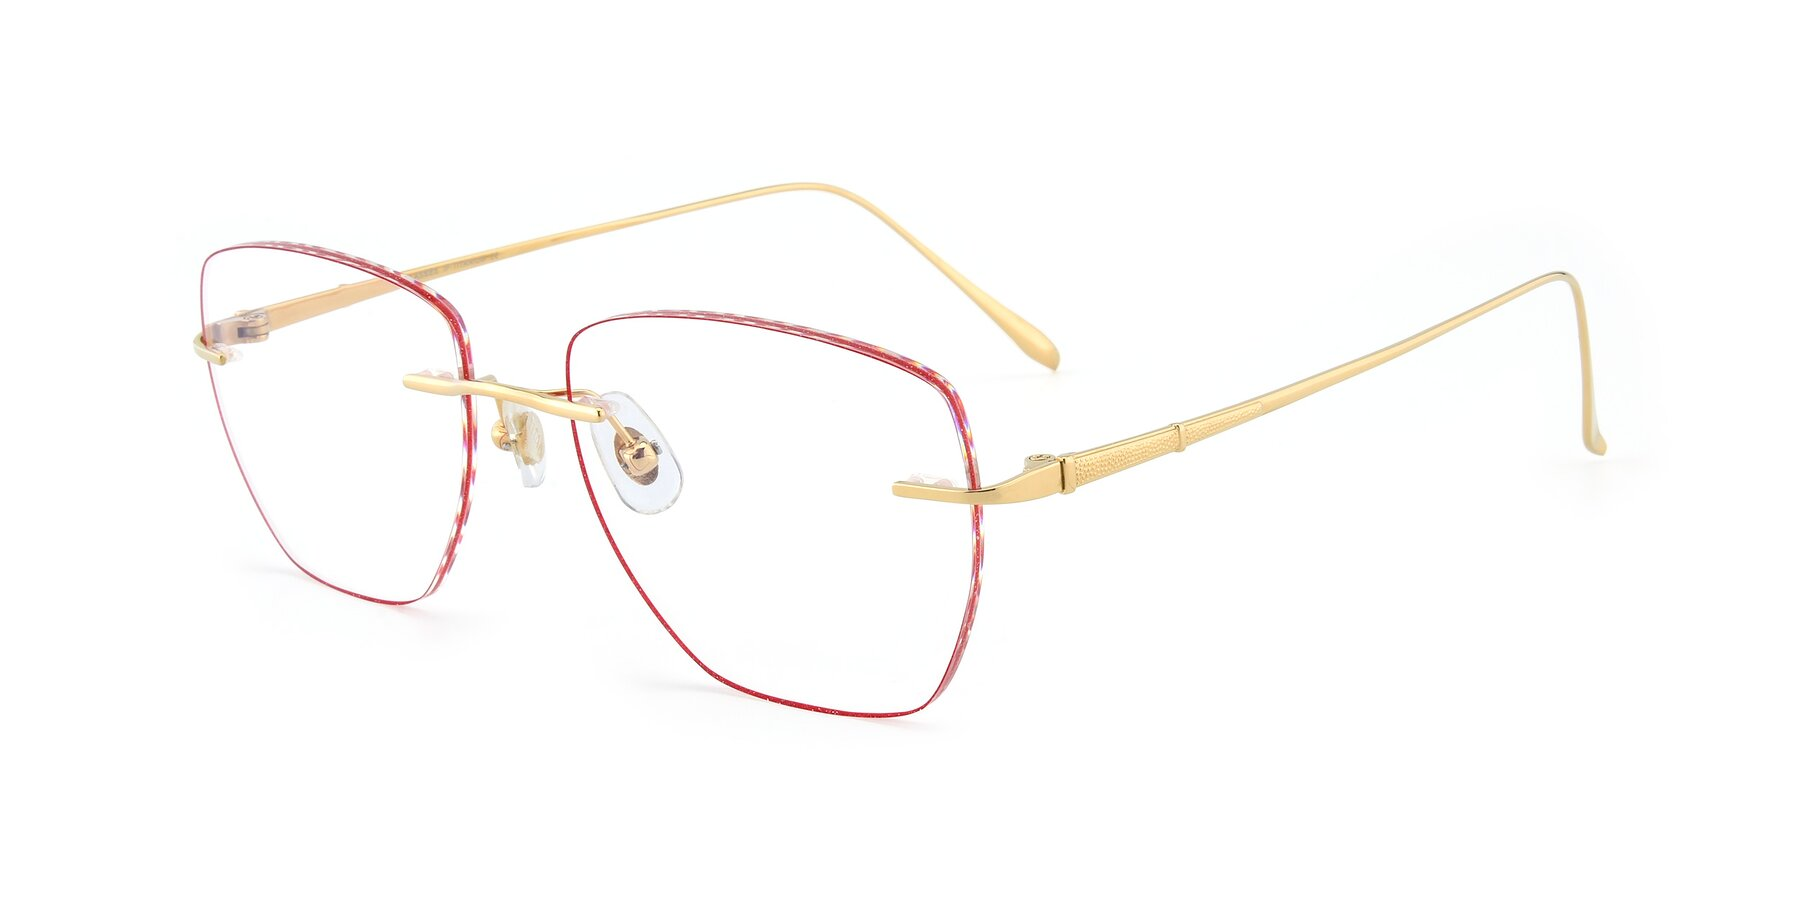 Angle of Y7011 in Gold-Red with Clear Eyeglass Lenses